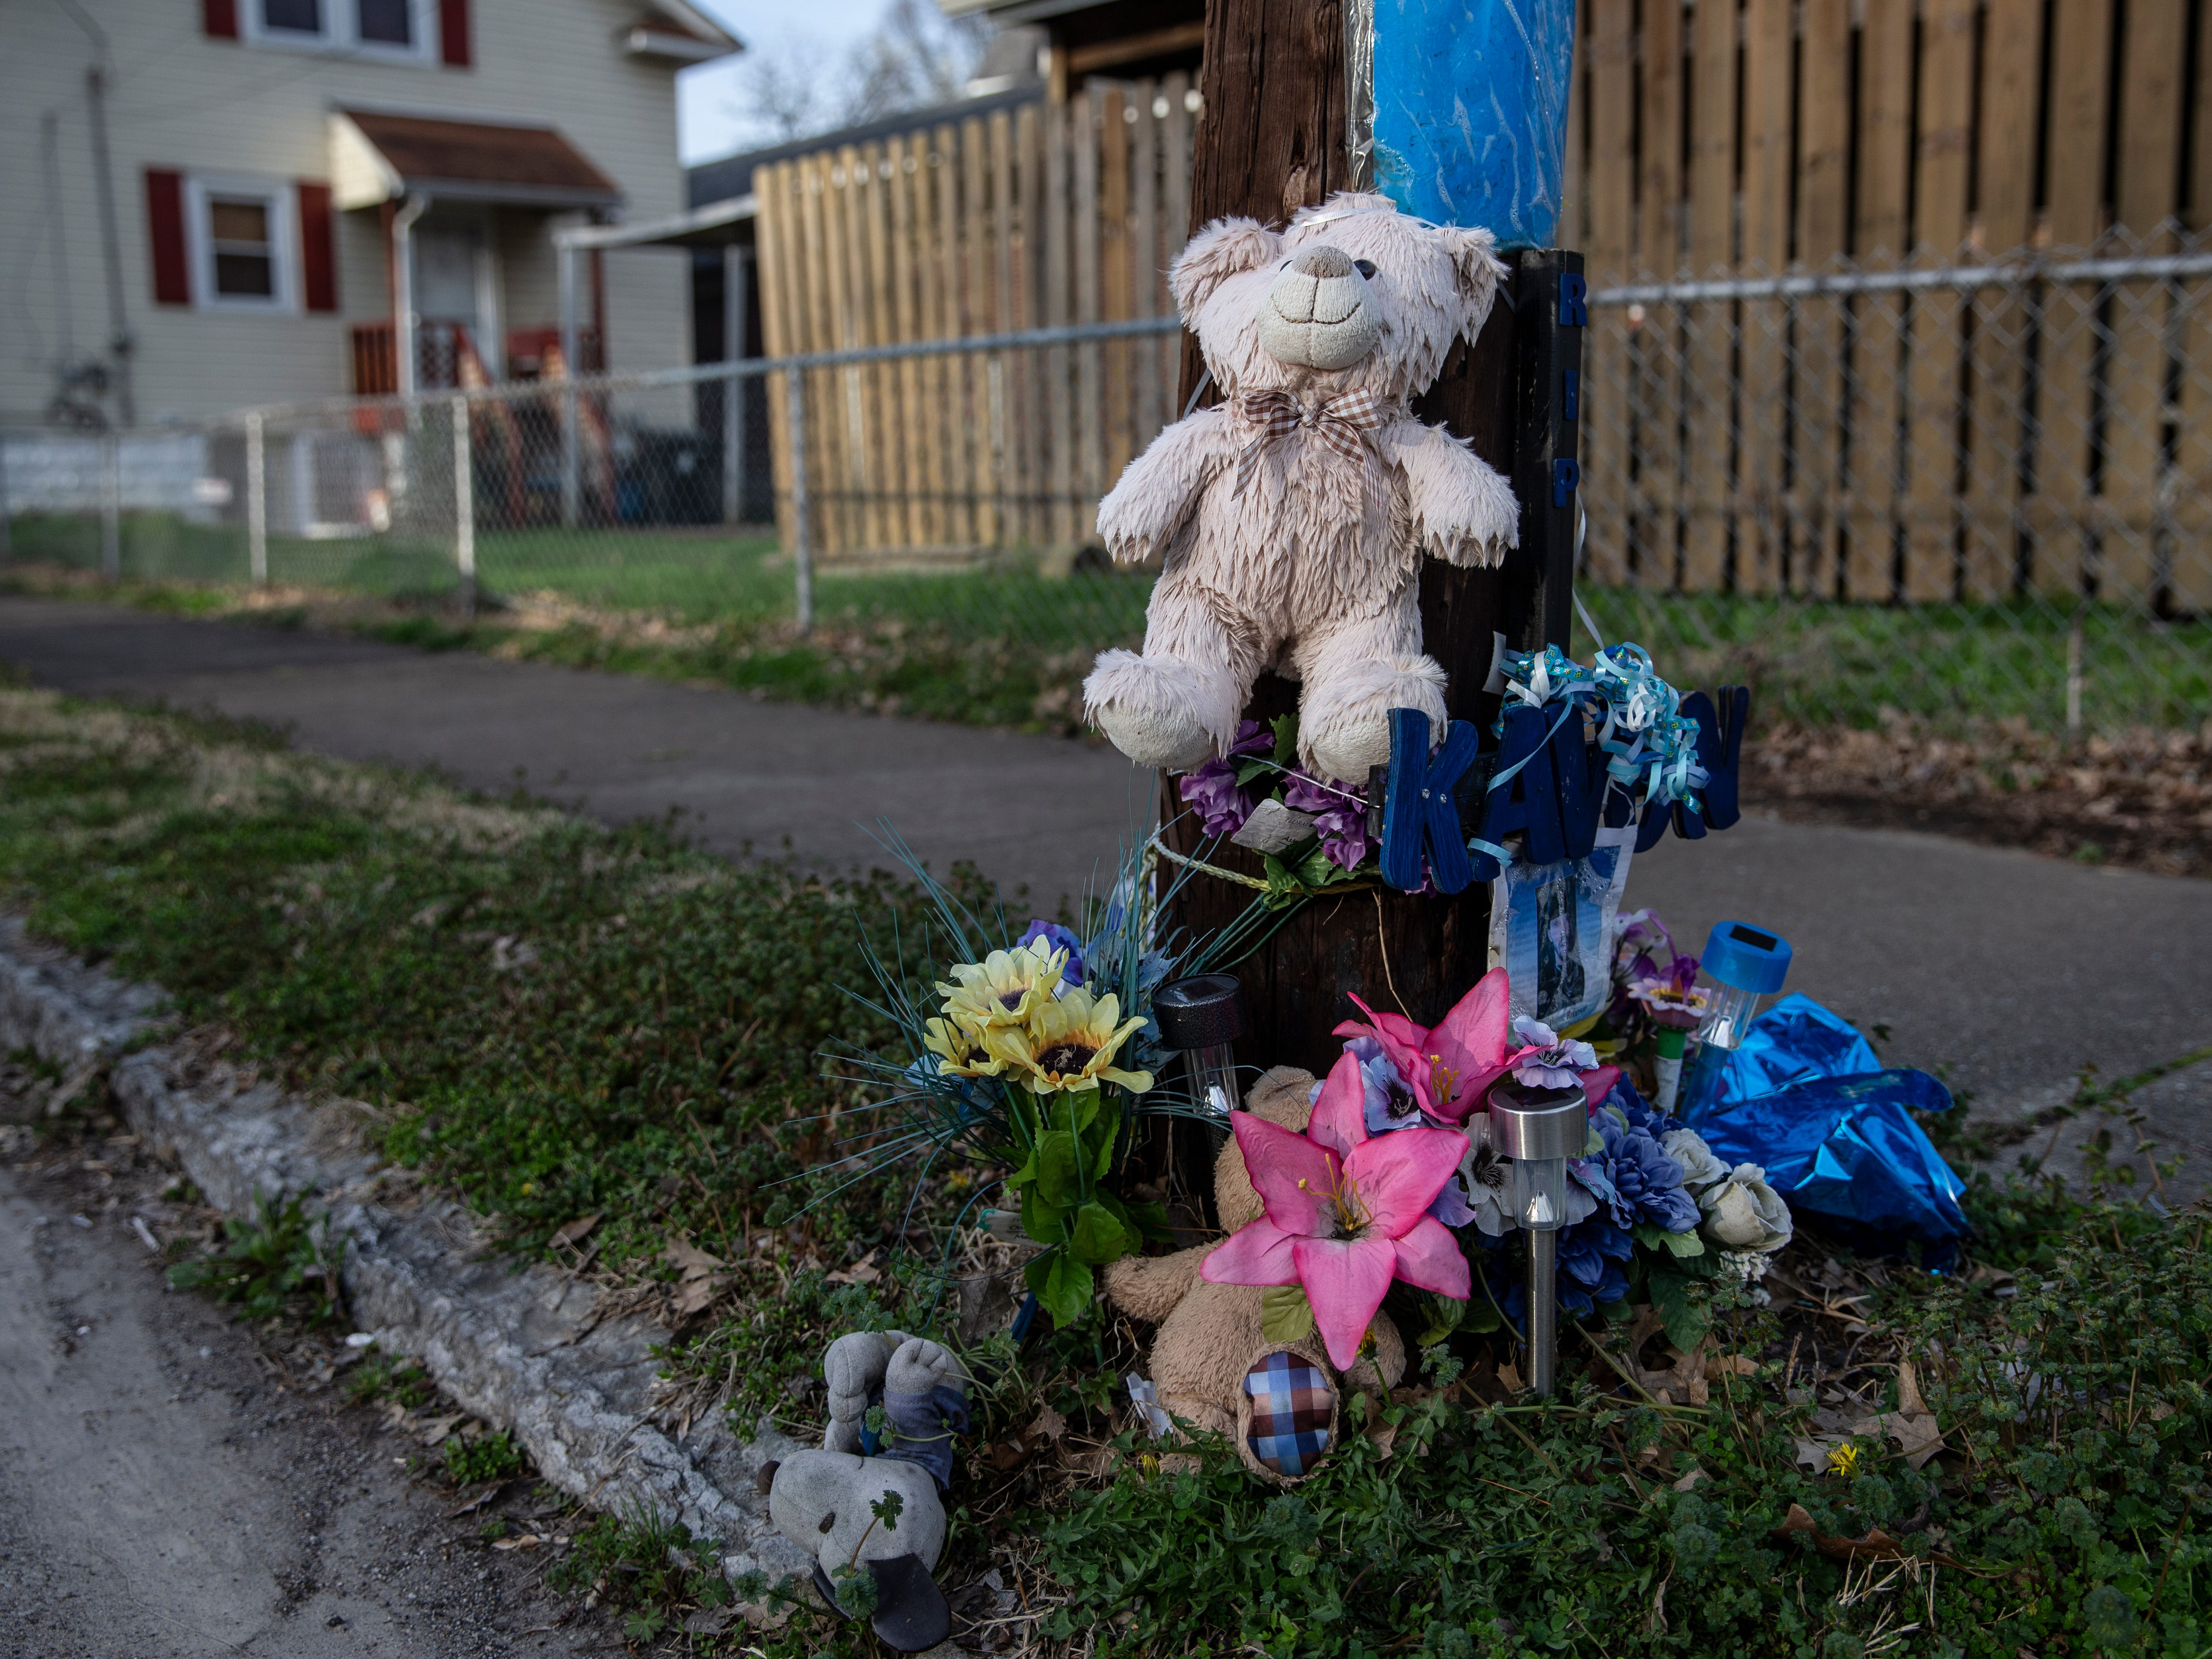 A makeshift memorial for Kontar Dwayne Roberson, 37, who was shot and killed on South 23rd Street near Garland in 2017.  April 3, 2019.